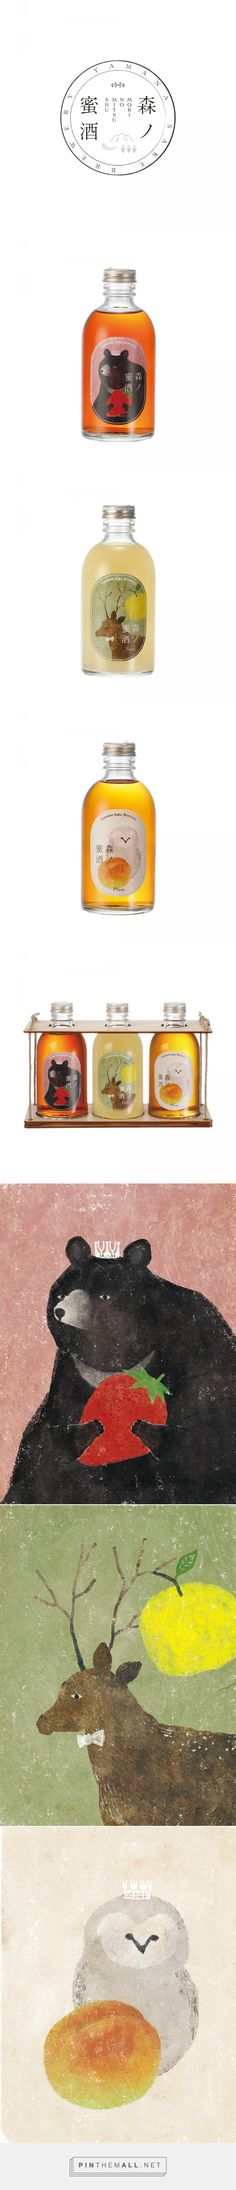 Label design for liqueur on Behance bu Akira Kusaka, Osaka, Japan curated by Packaging Diva PD. Yamana sake brewery illustrated packaging is just sooo cute. Art Direction, graphic design, illustration.